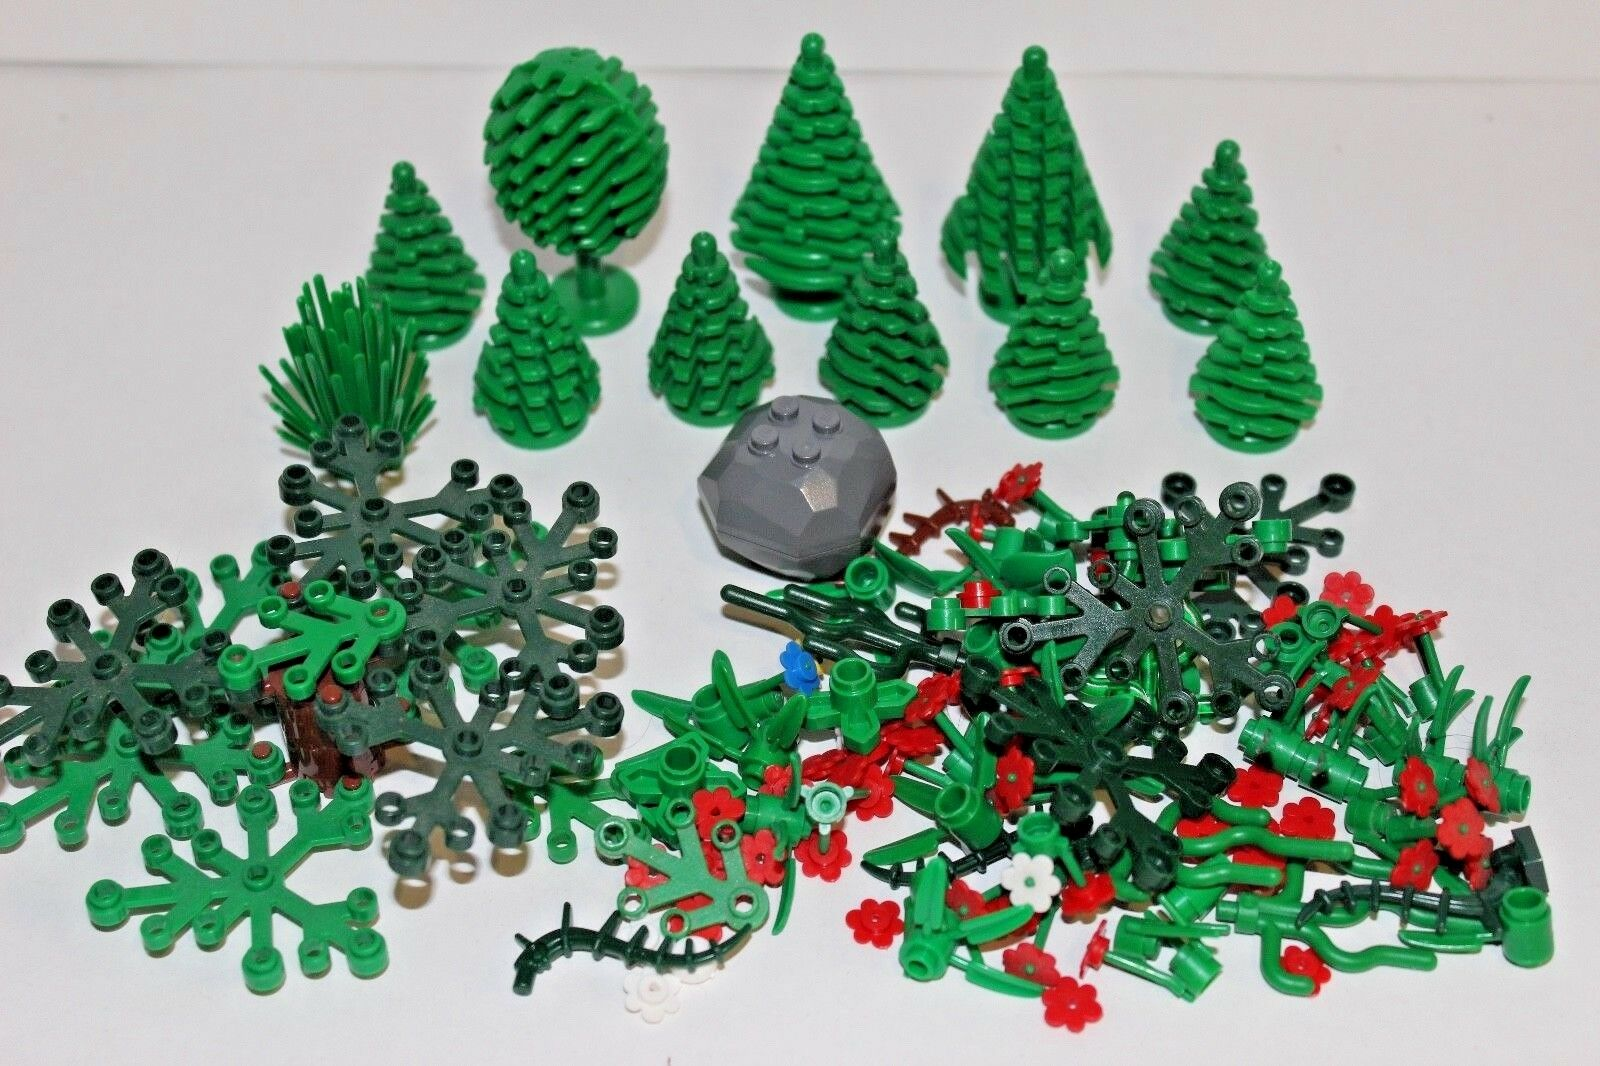 LEGO Bulk Lot - Trees Bushes Flowers Leaves Greenery Plants